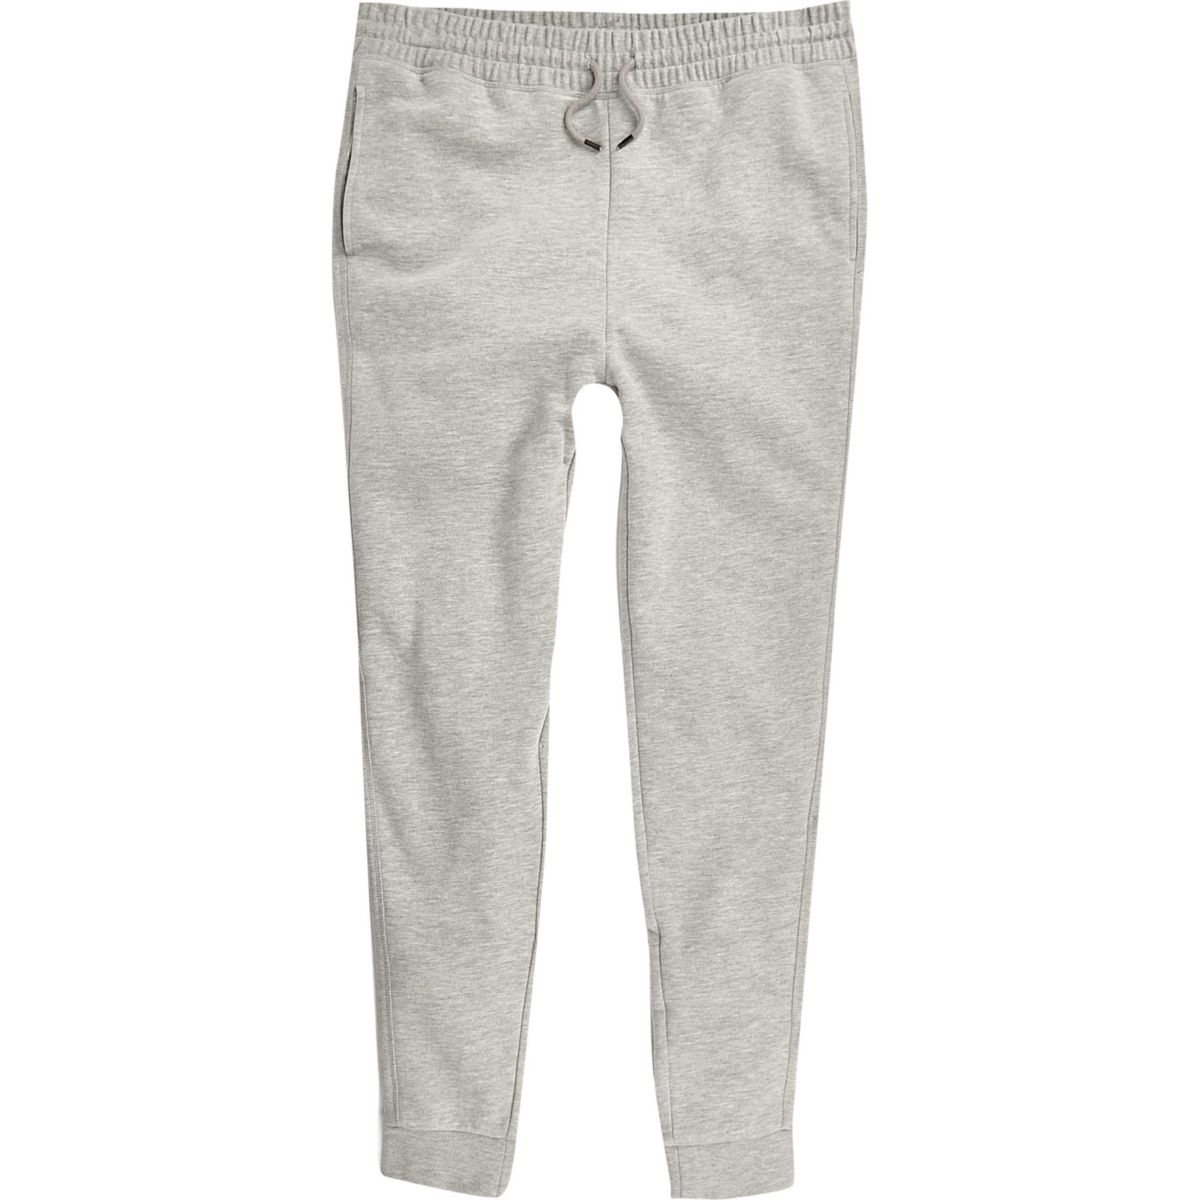 Big and Tall - Gemêleerd grijze joggingbroek